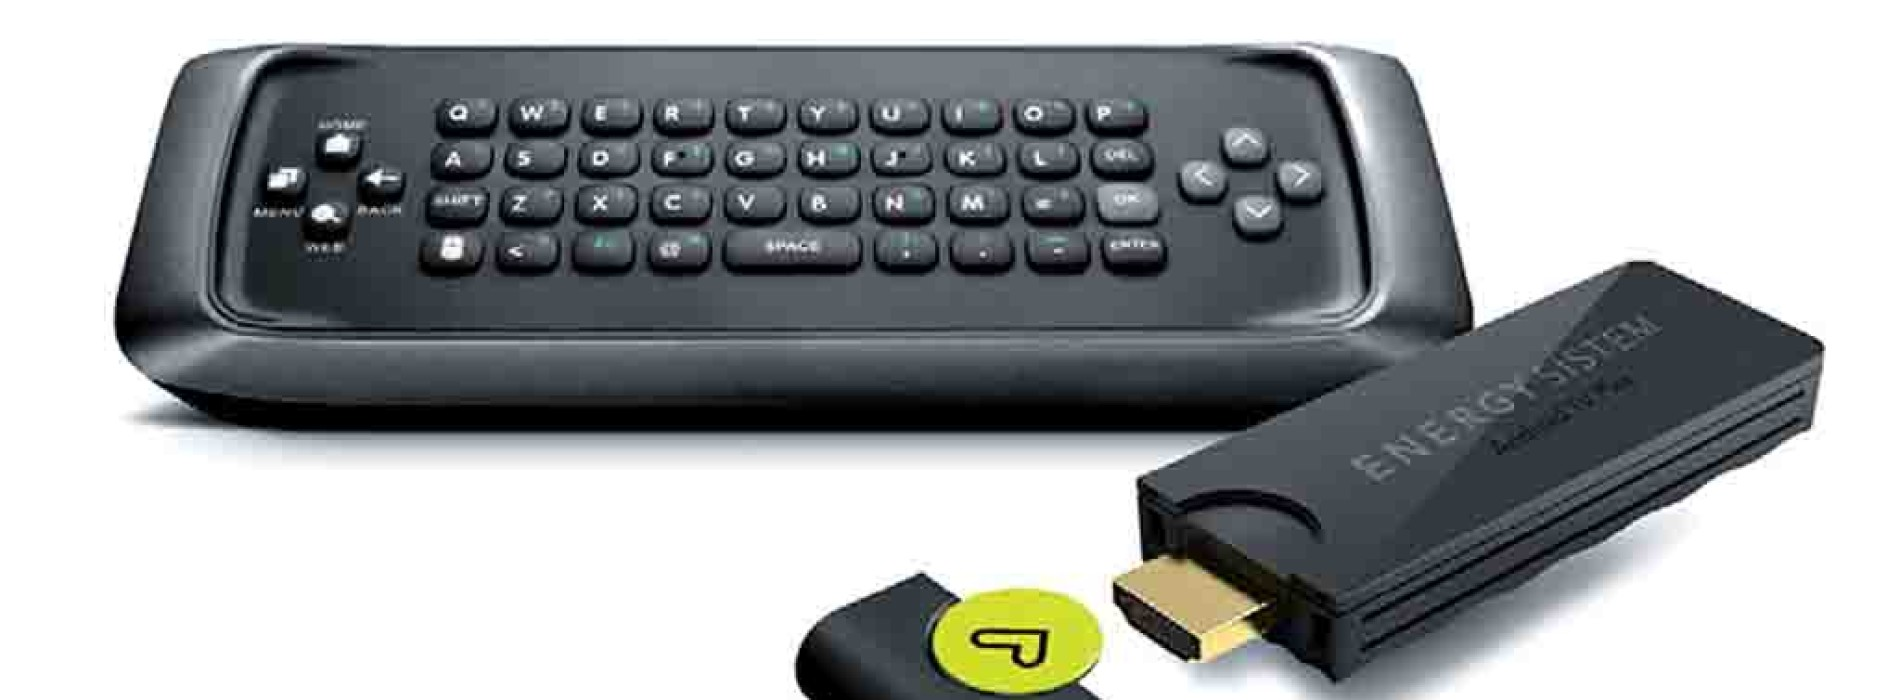 Concurso: Energy Android TV Play